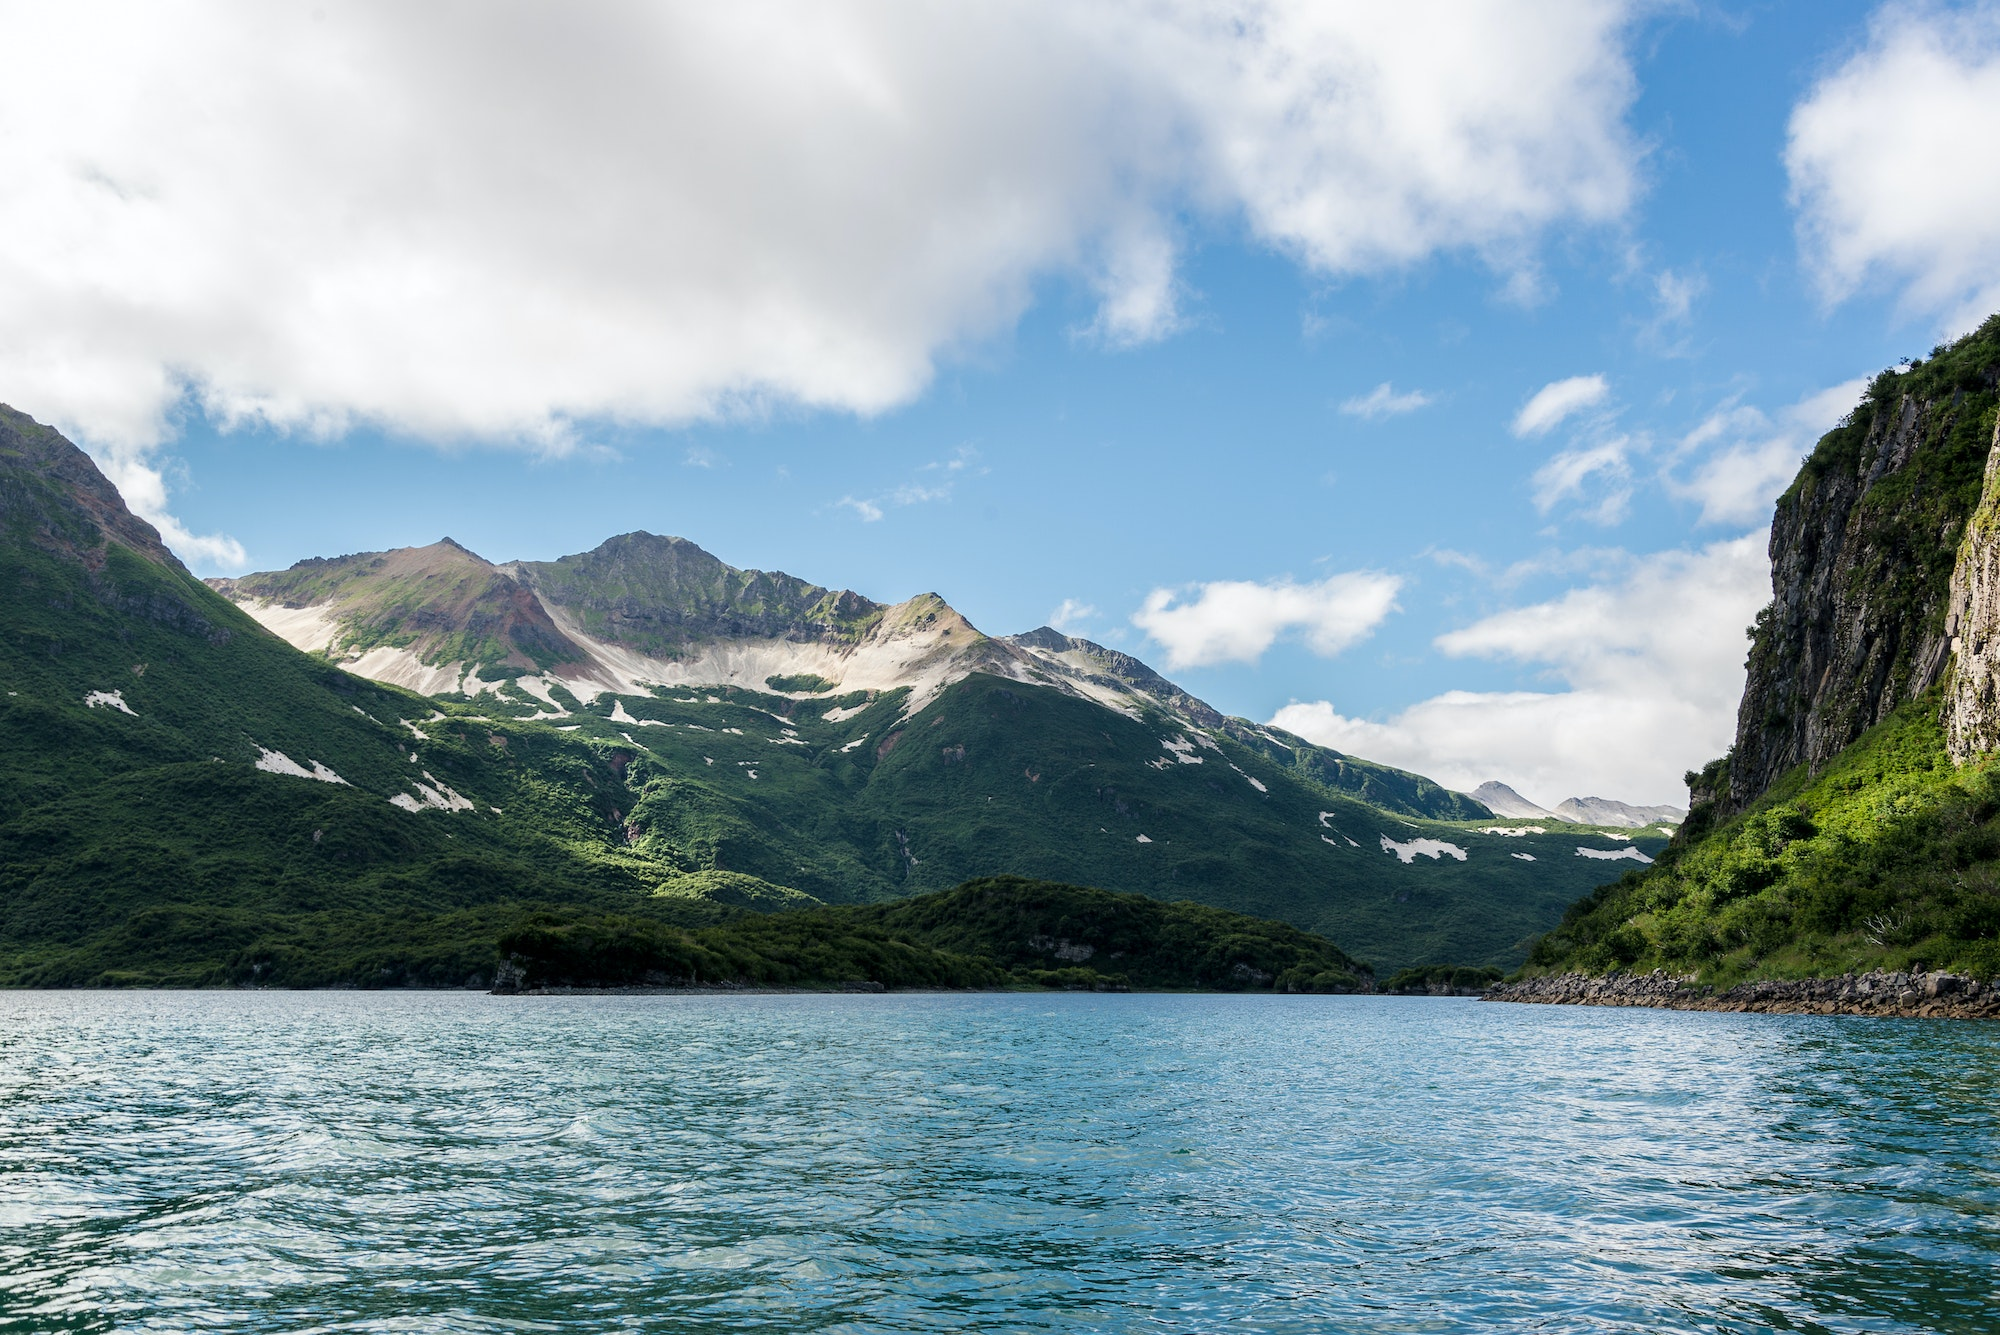 Located in southern Alaska, Katmai National Park is famous for its Alaskan grizzly bear population.